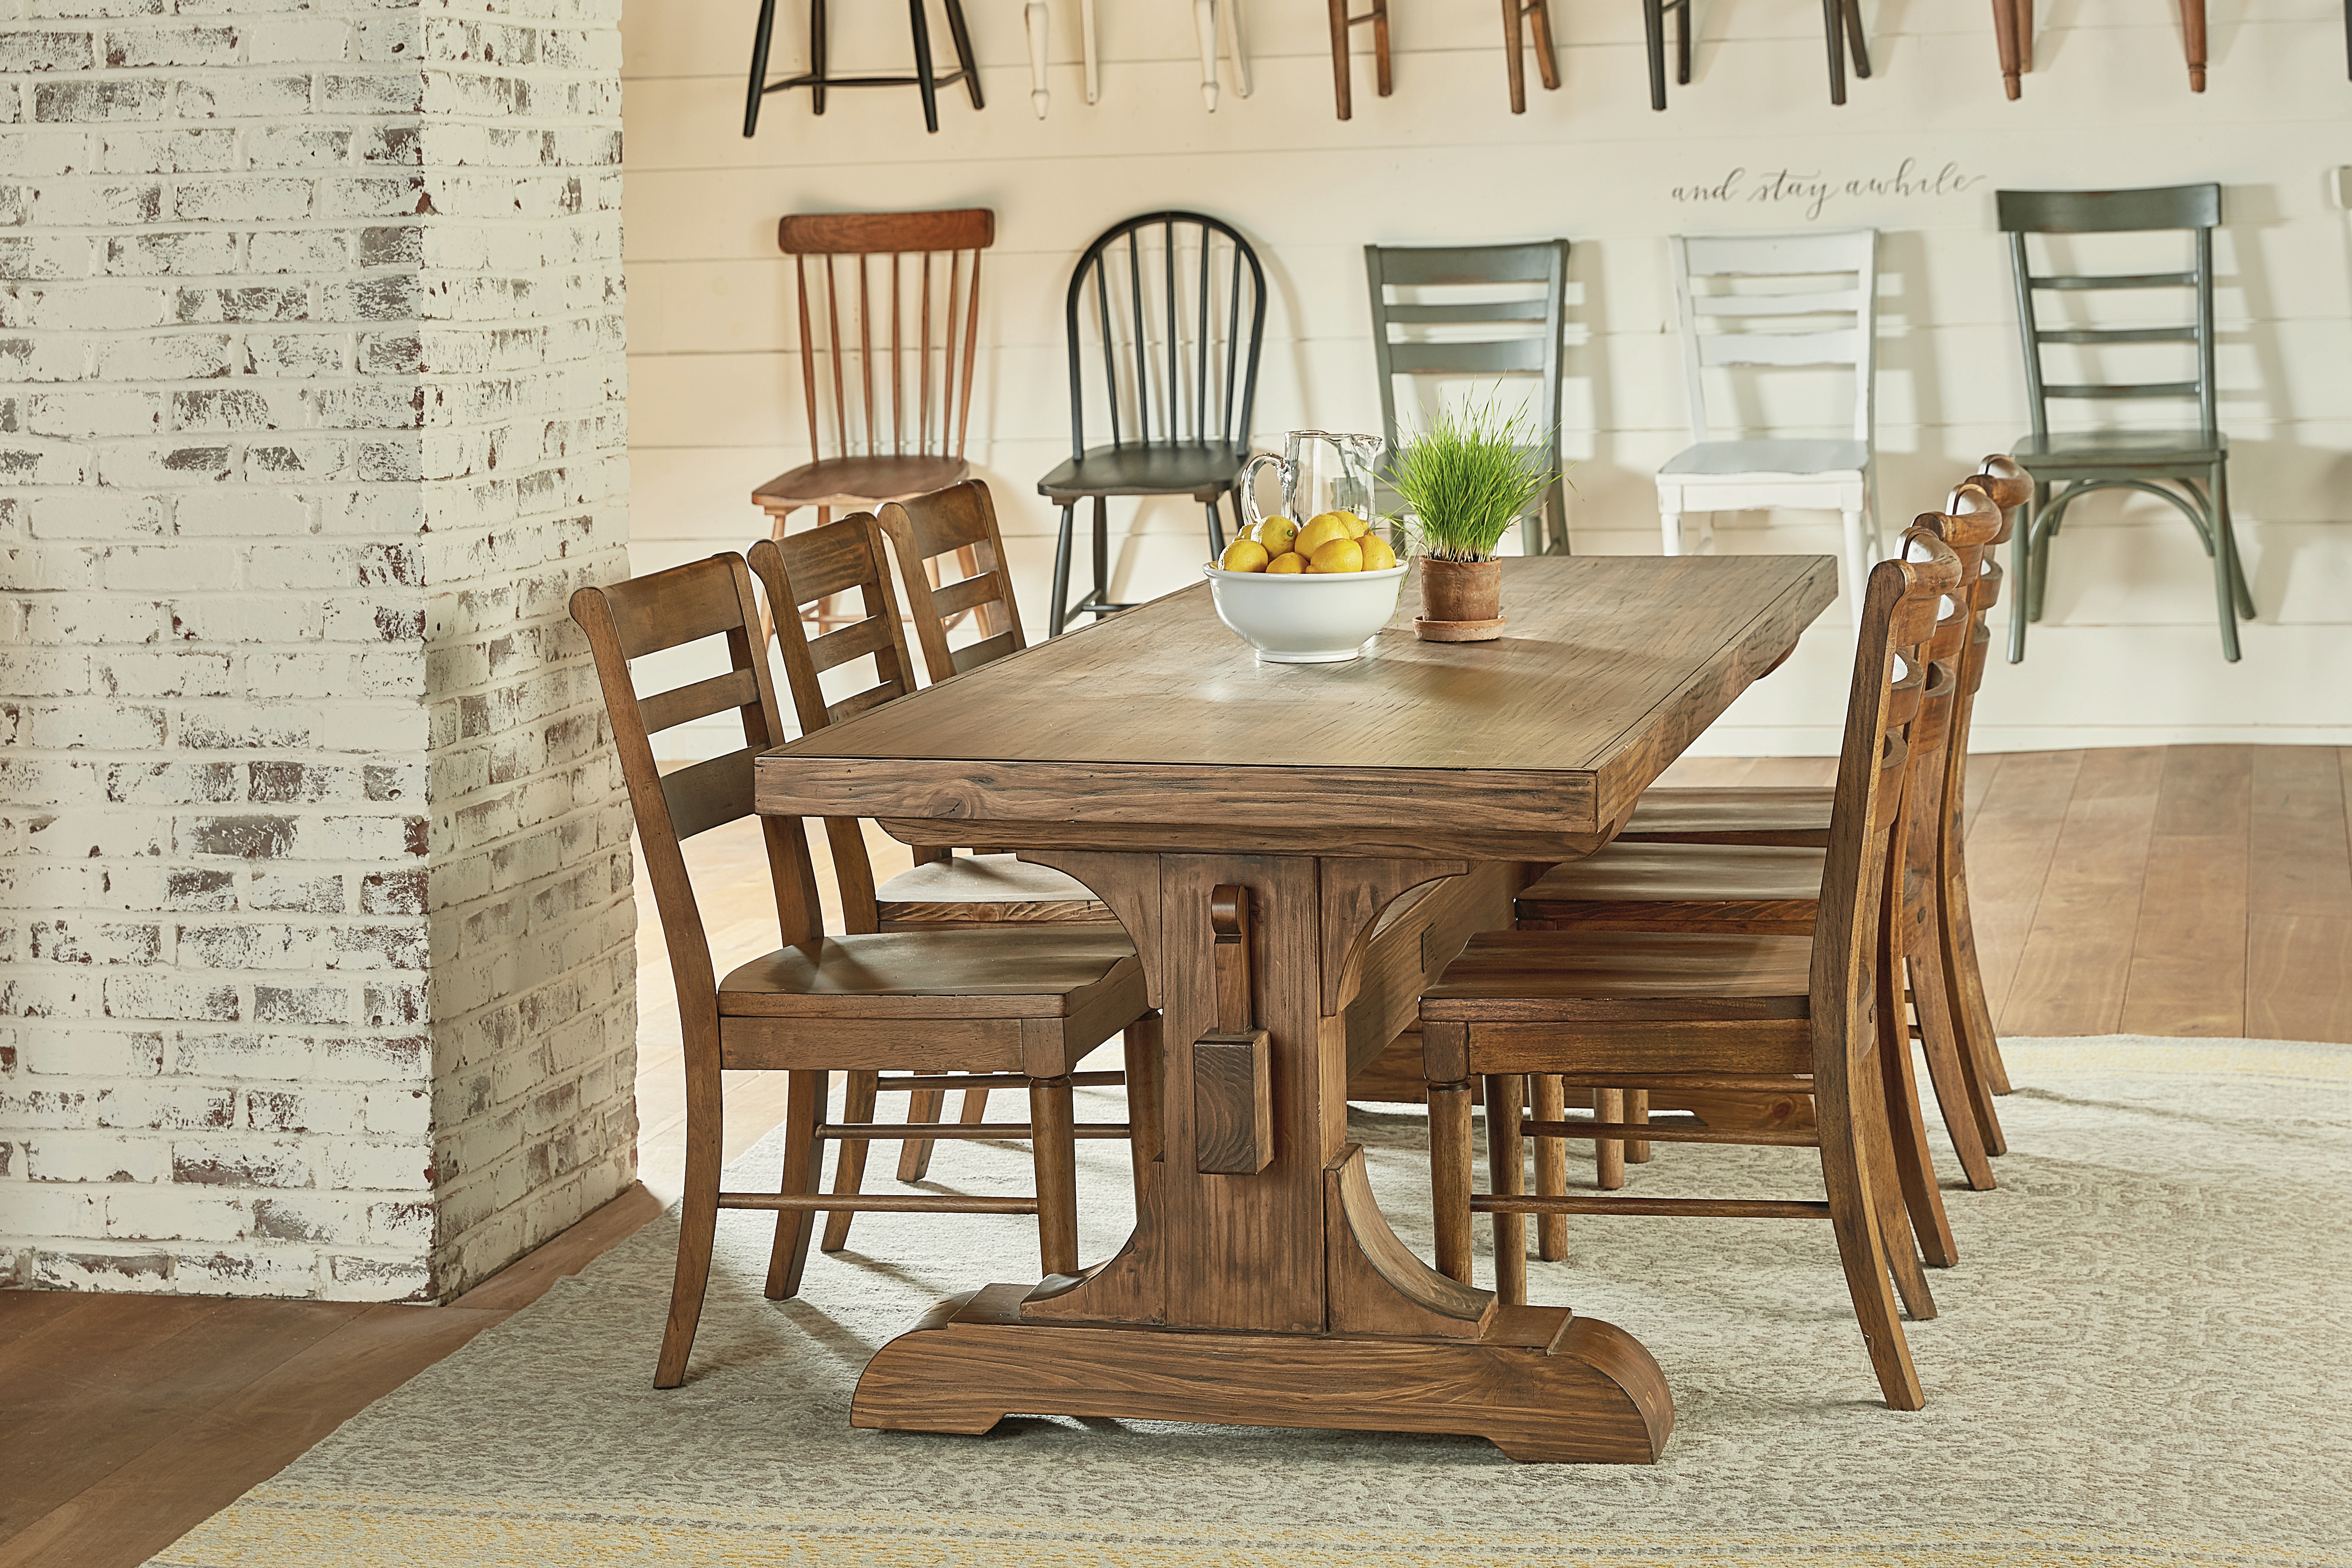 Magnolia home keyed trestle table setting table with 6 chairs 6010501r table setting